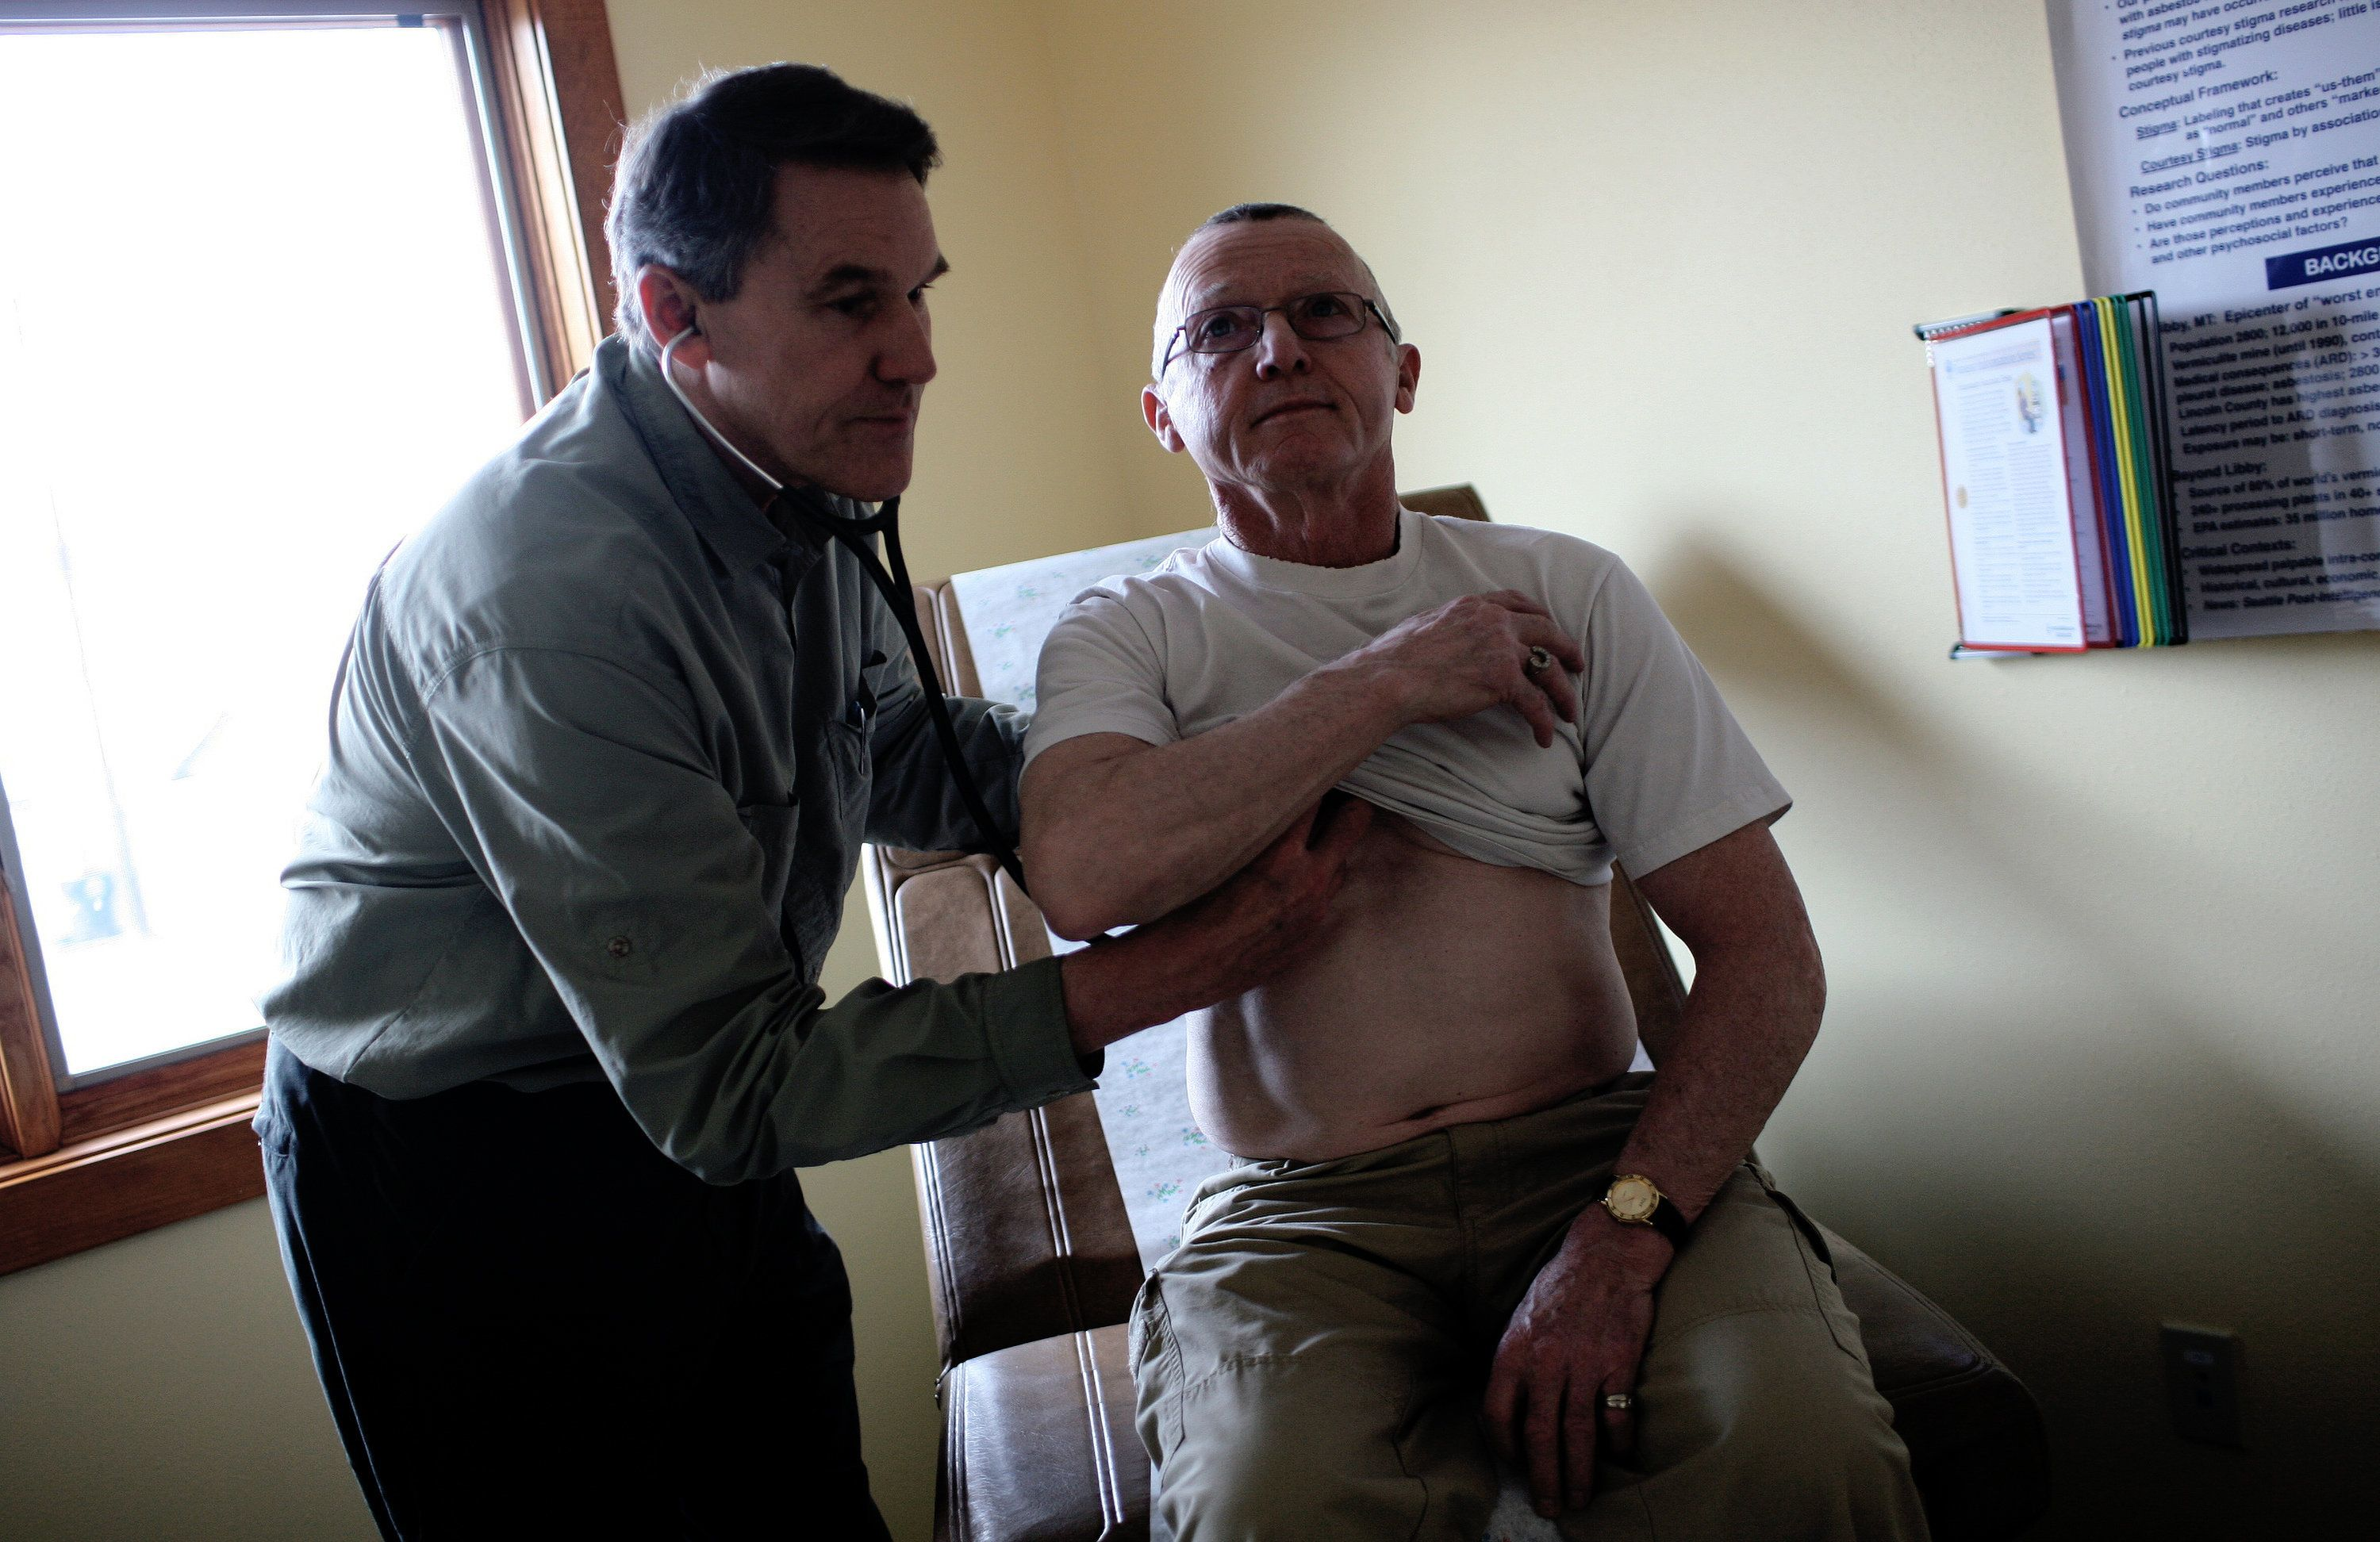 Dr. Brad Black, the CEO of Libby's Center for Asbestos Related Disease, checks one of his patients, Thomas Creighton.